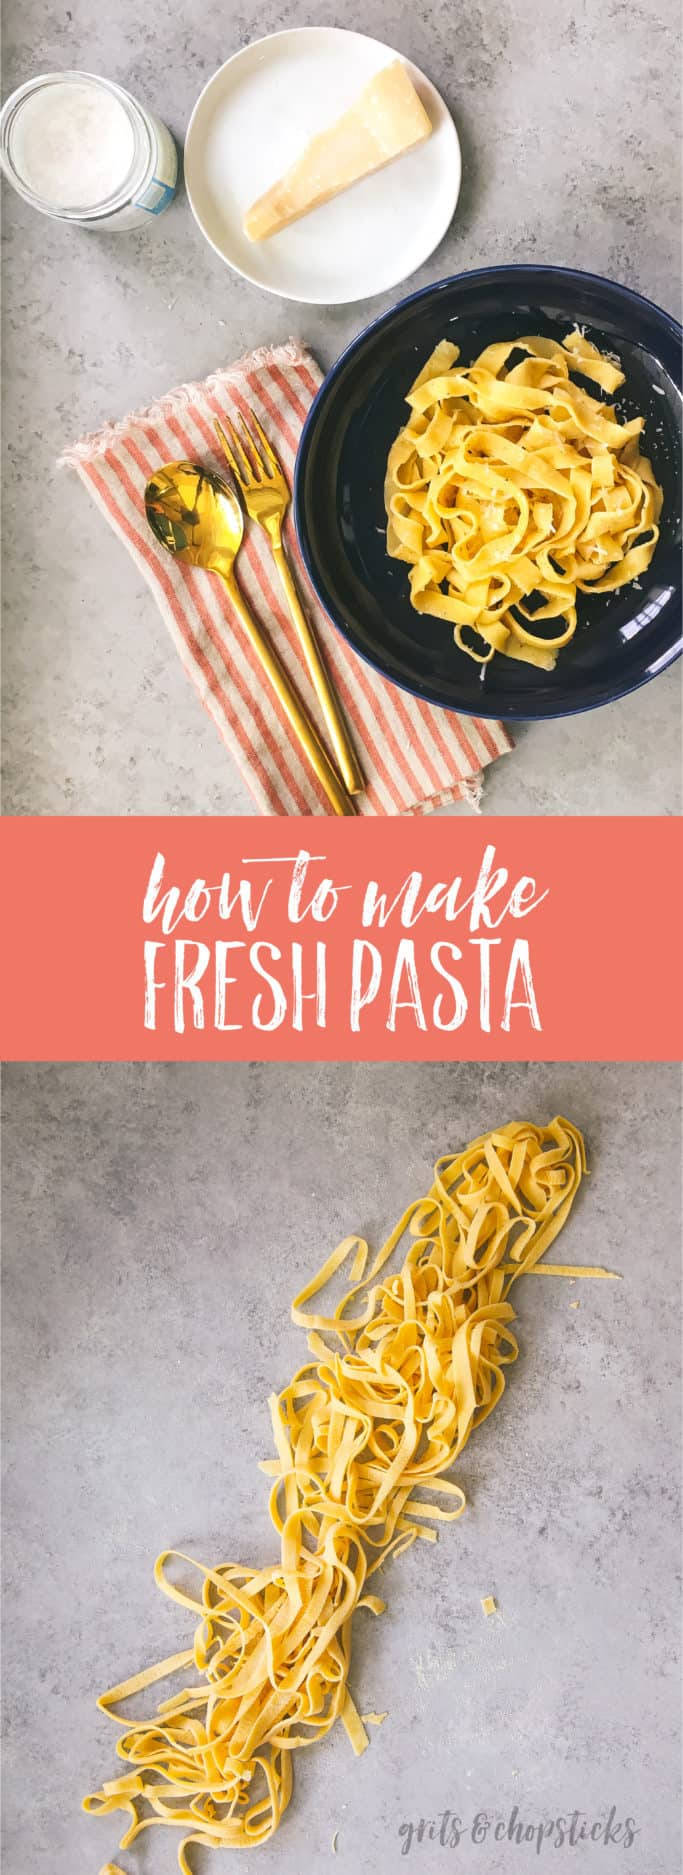 make pasta by hand